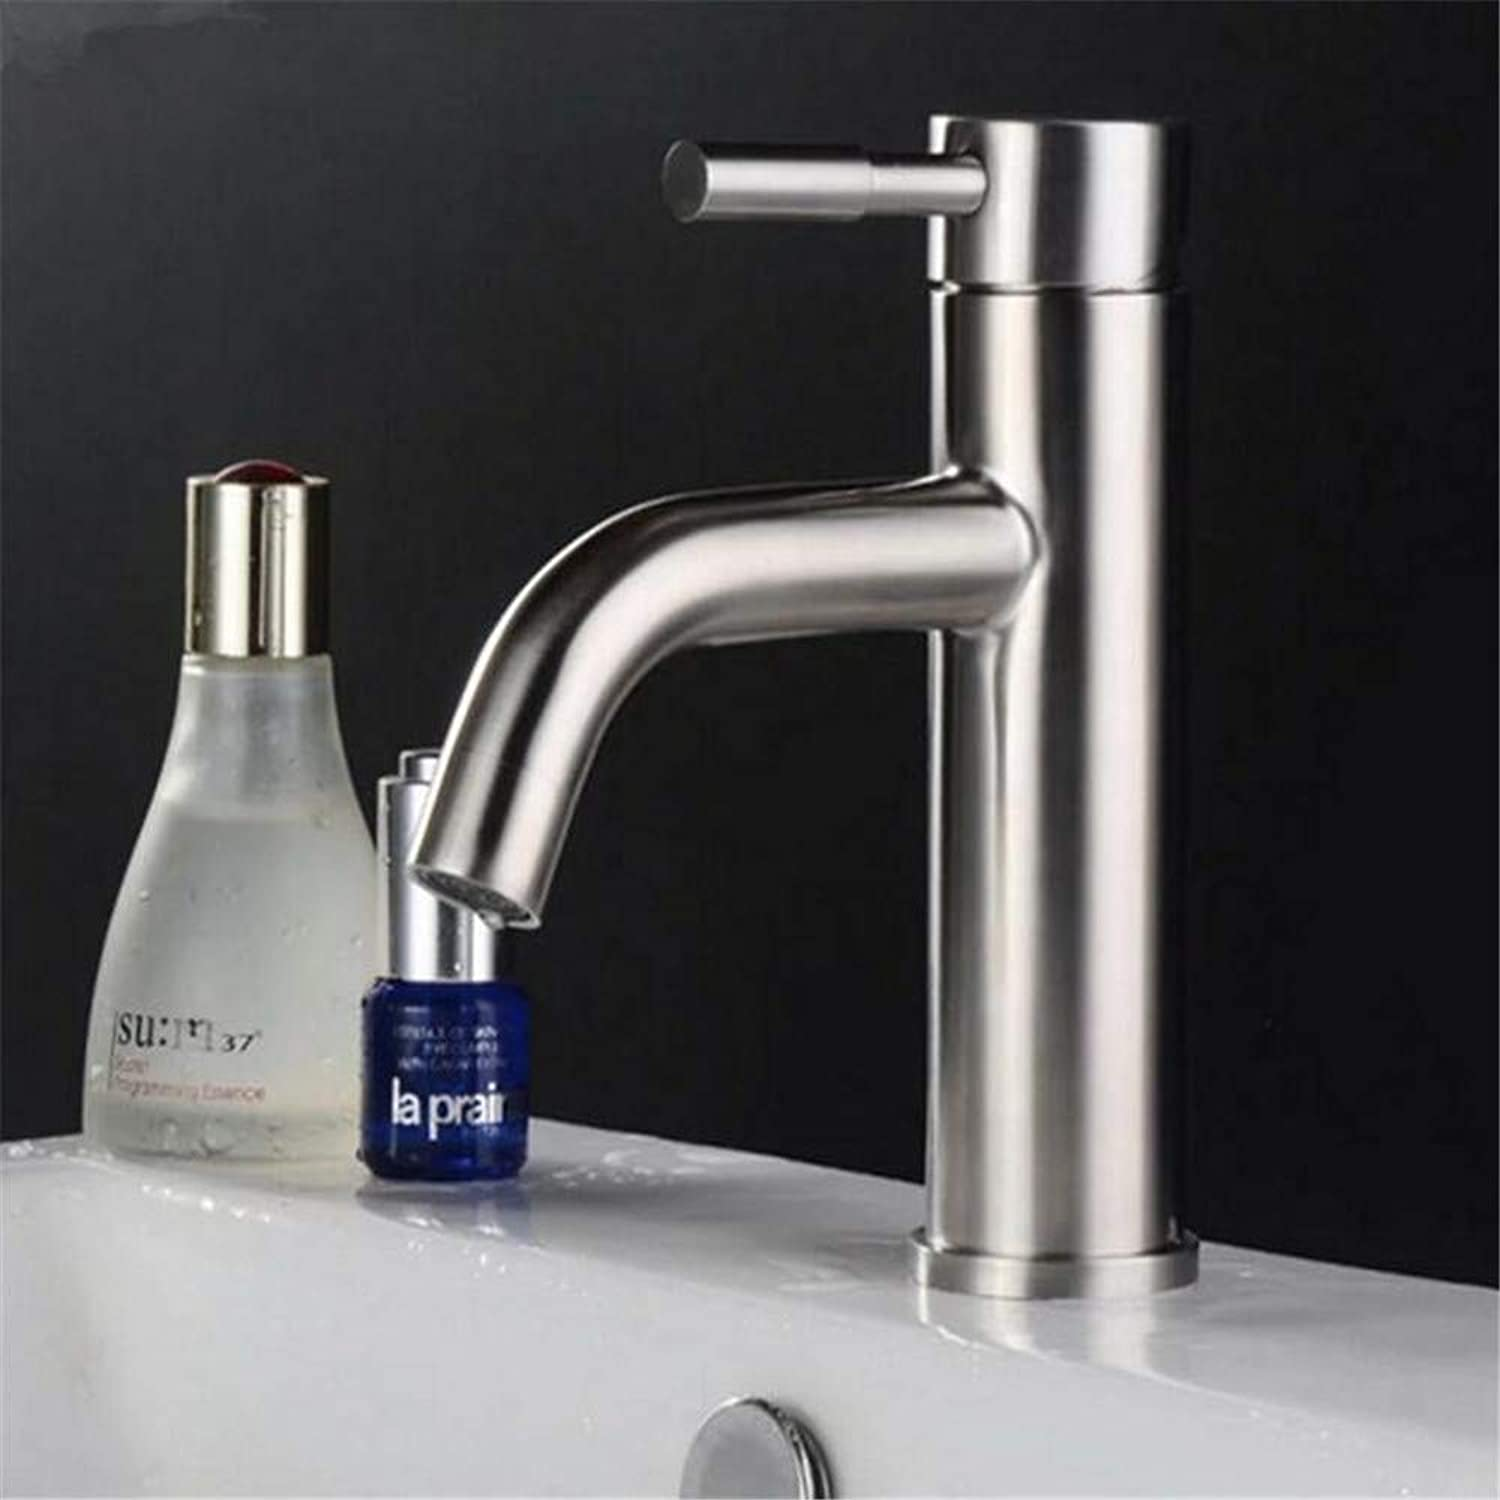 Basin Mixer Tap 304 Stainless Steel Faucet Hot and Cold Sitting Single Hole Basin Table Top Basin Basin Basin Faucet